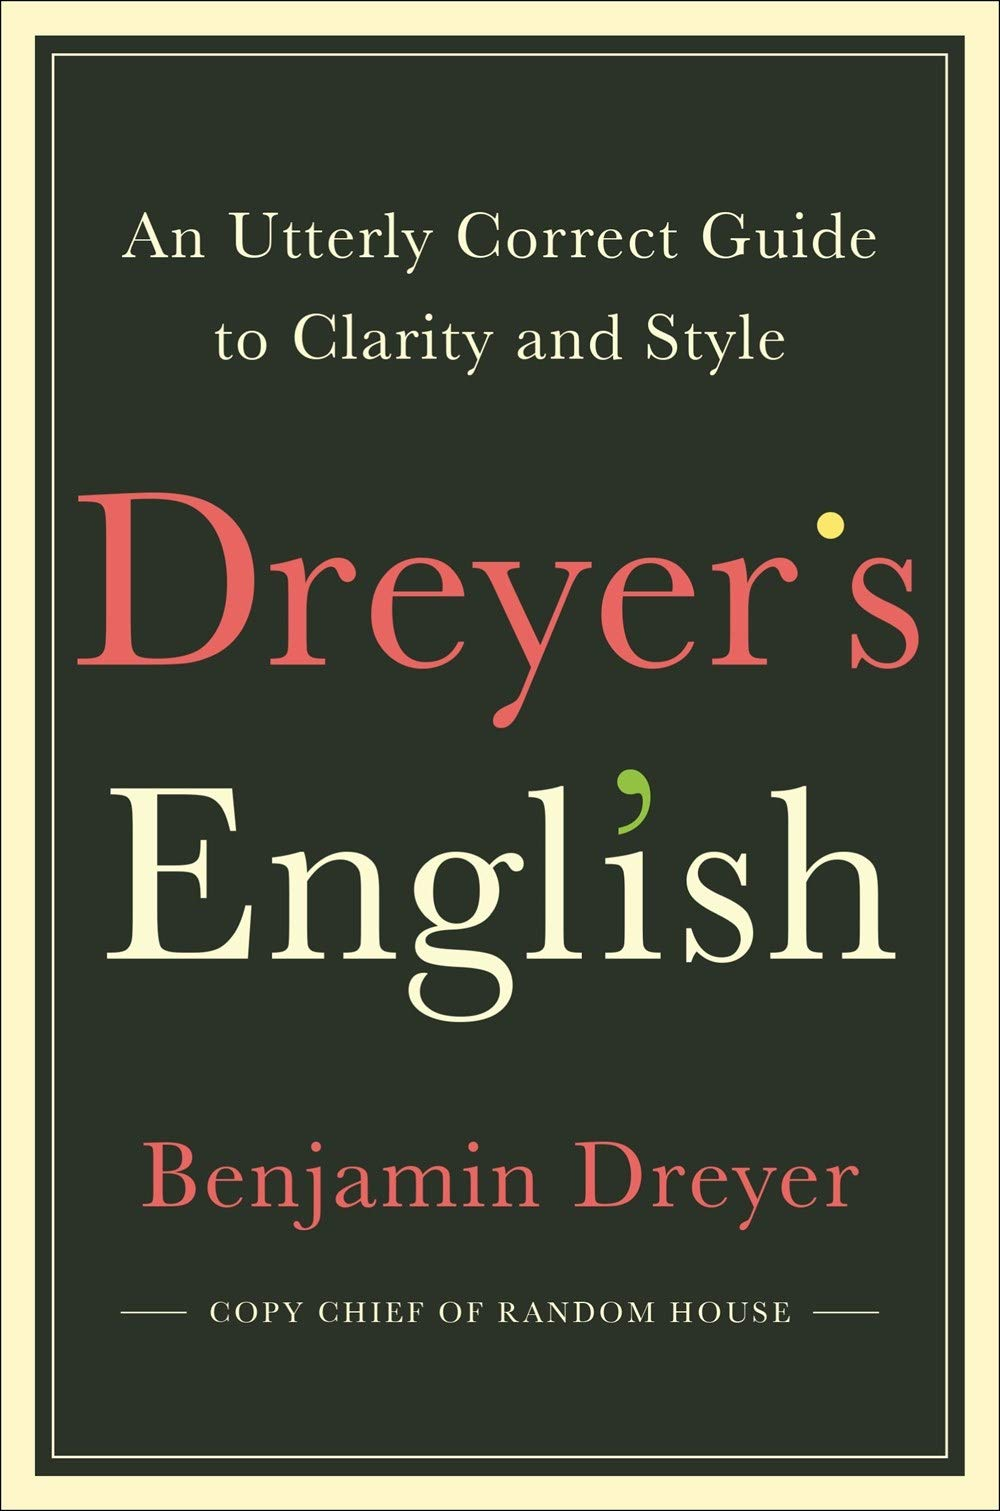 Dreyer's English: An Utterly Correct Guide to Clarity and Style by Benjamin Dreyer